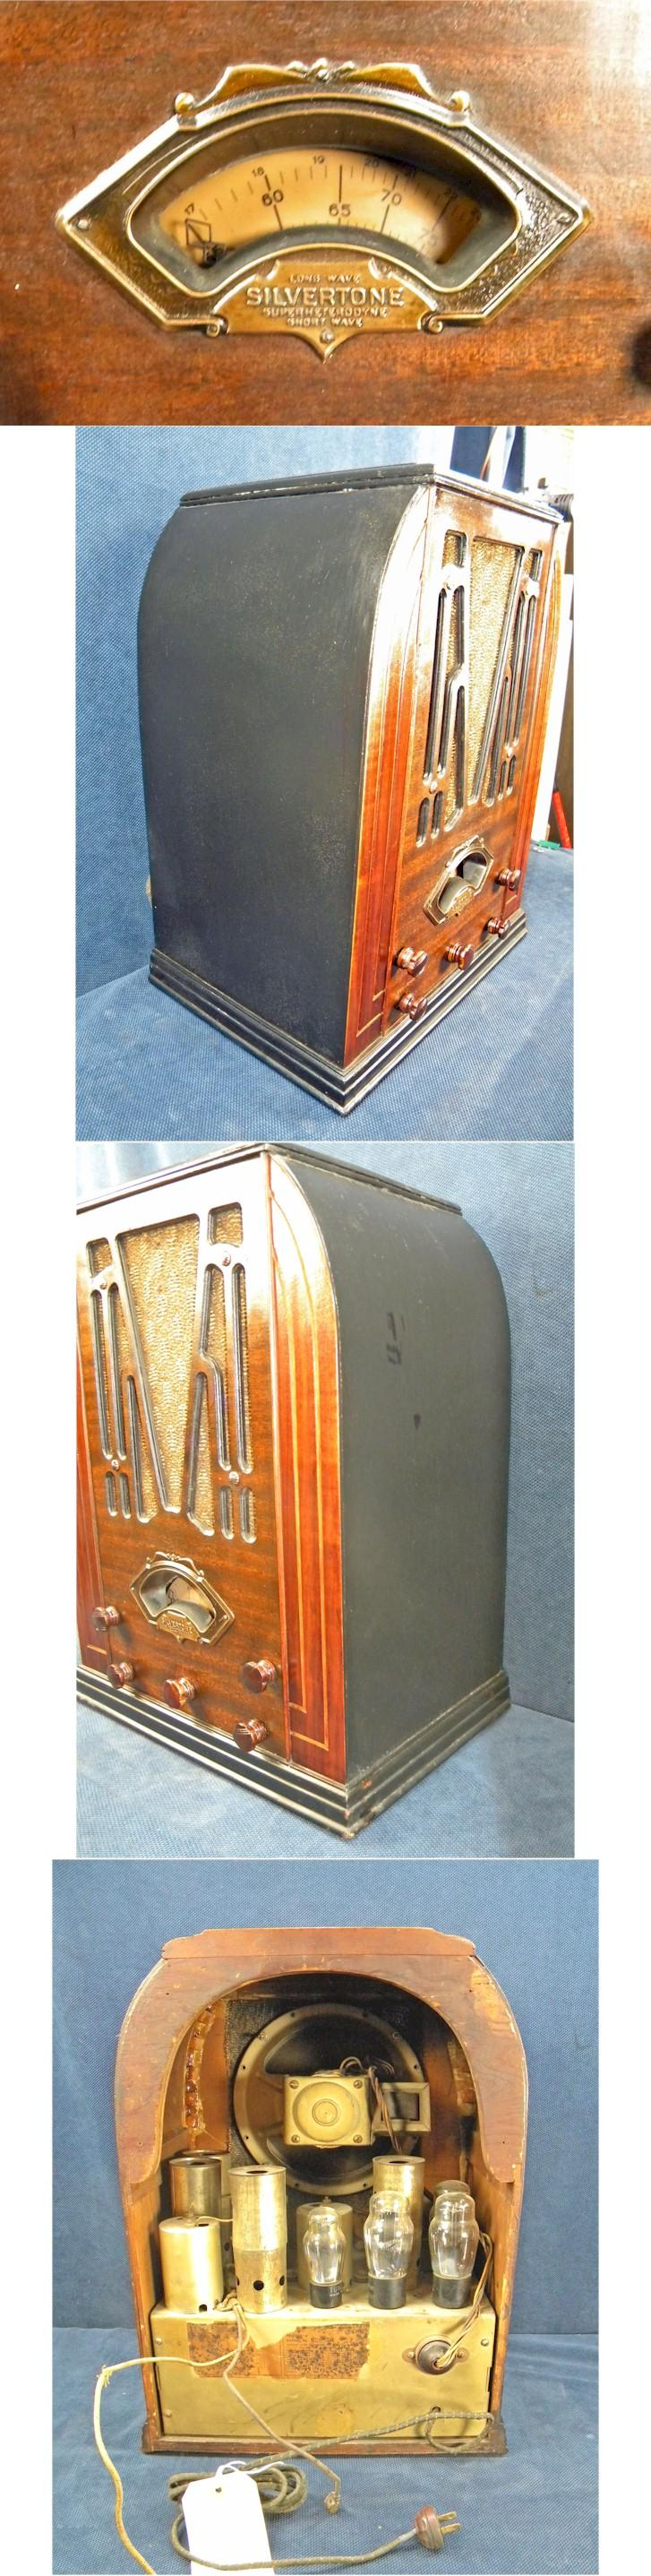 "Silvertone 1708 ""World's Fair"" Tombstone (1933)"